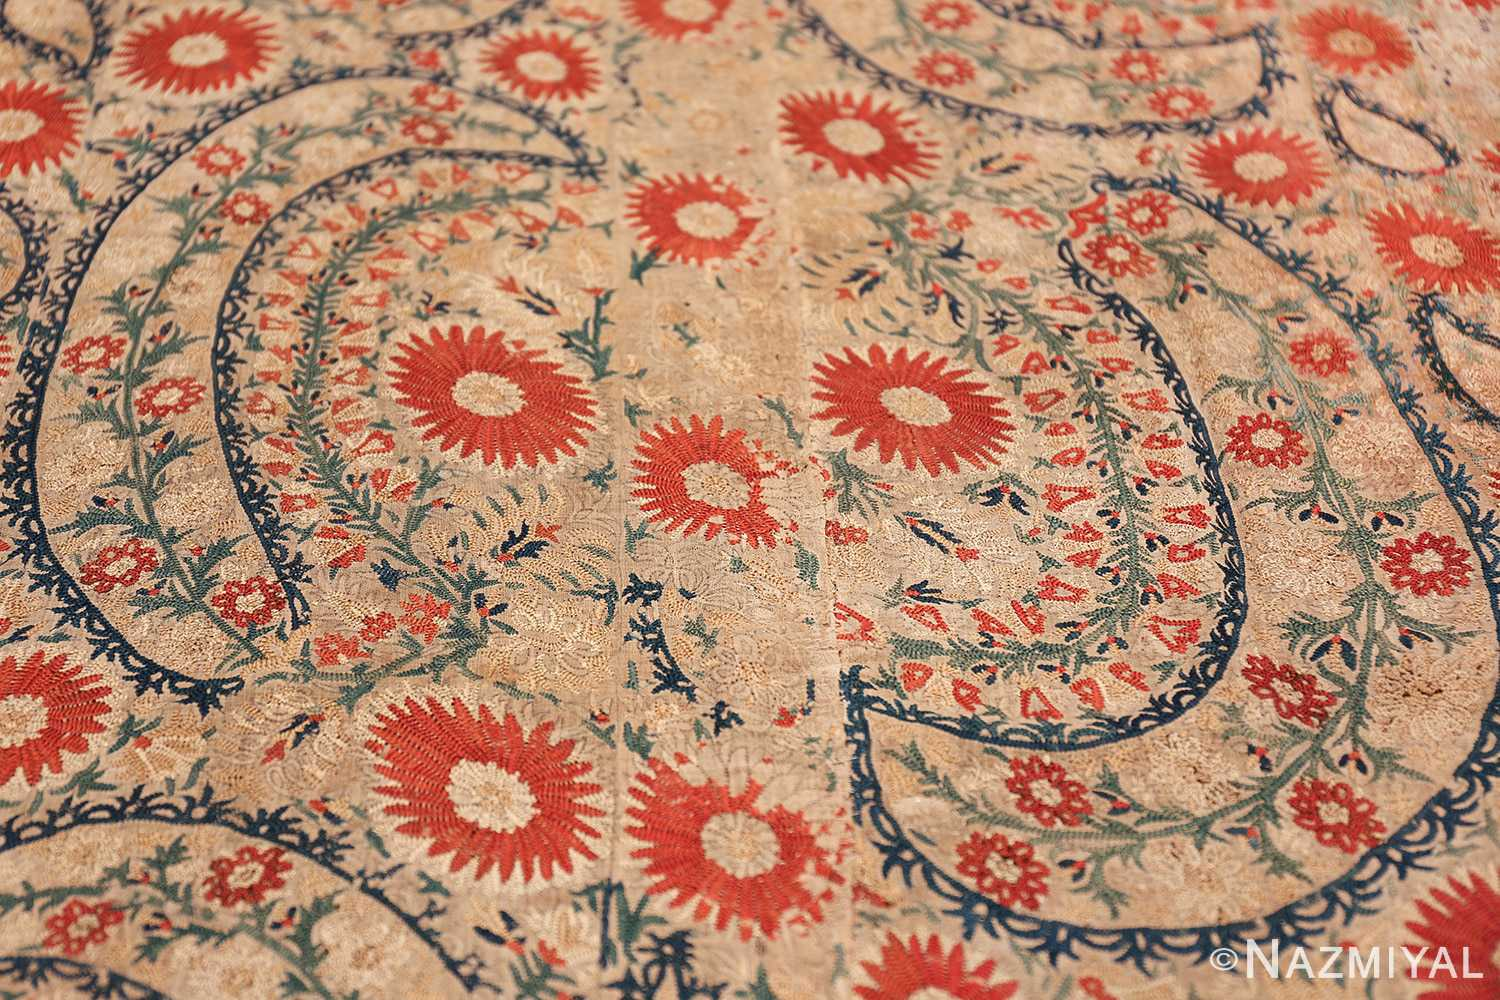 Antique 17th Century Ottoman Textile 41498 Floral Wreath Nazmiyal